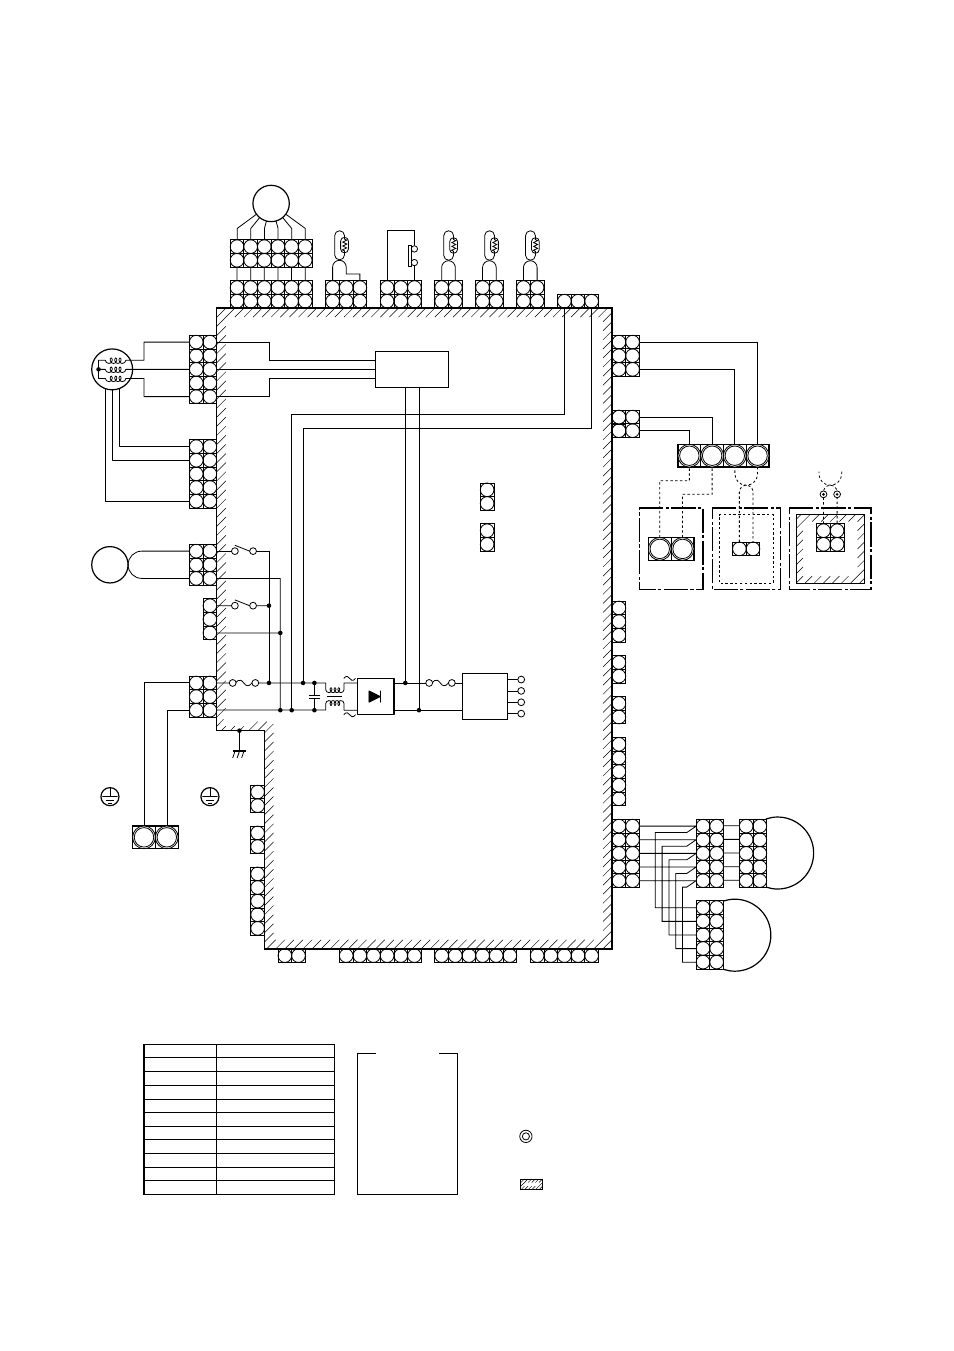 hight resolution of toshiba controller diagram wiring diagram site toshiba controller diagram